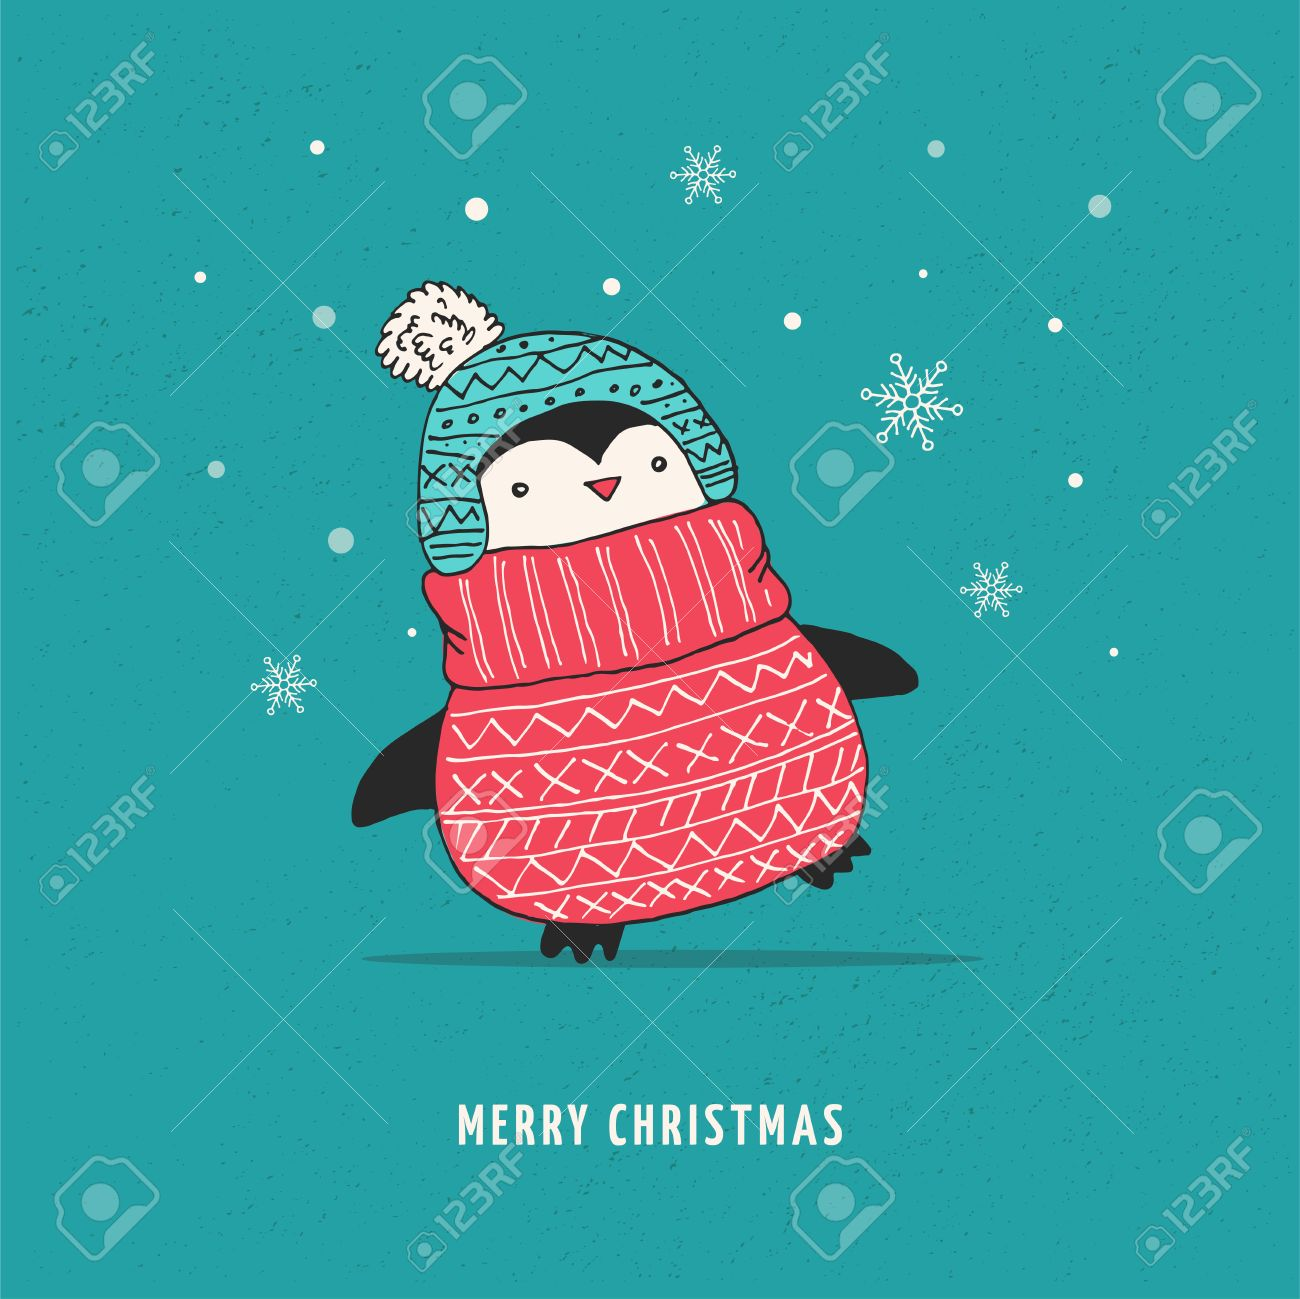 Cute Doodle Vector Penguin With Sweater - Merry Christmas Greetings ...